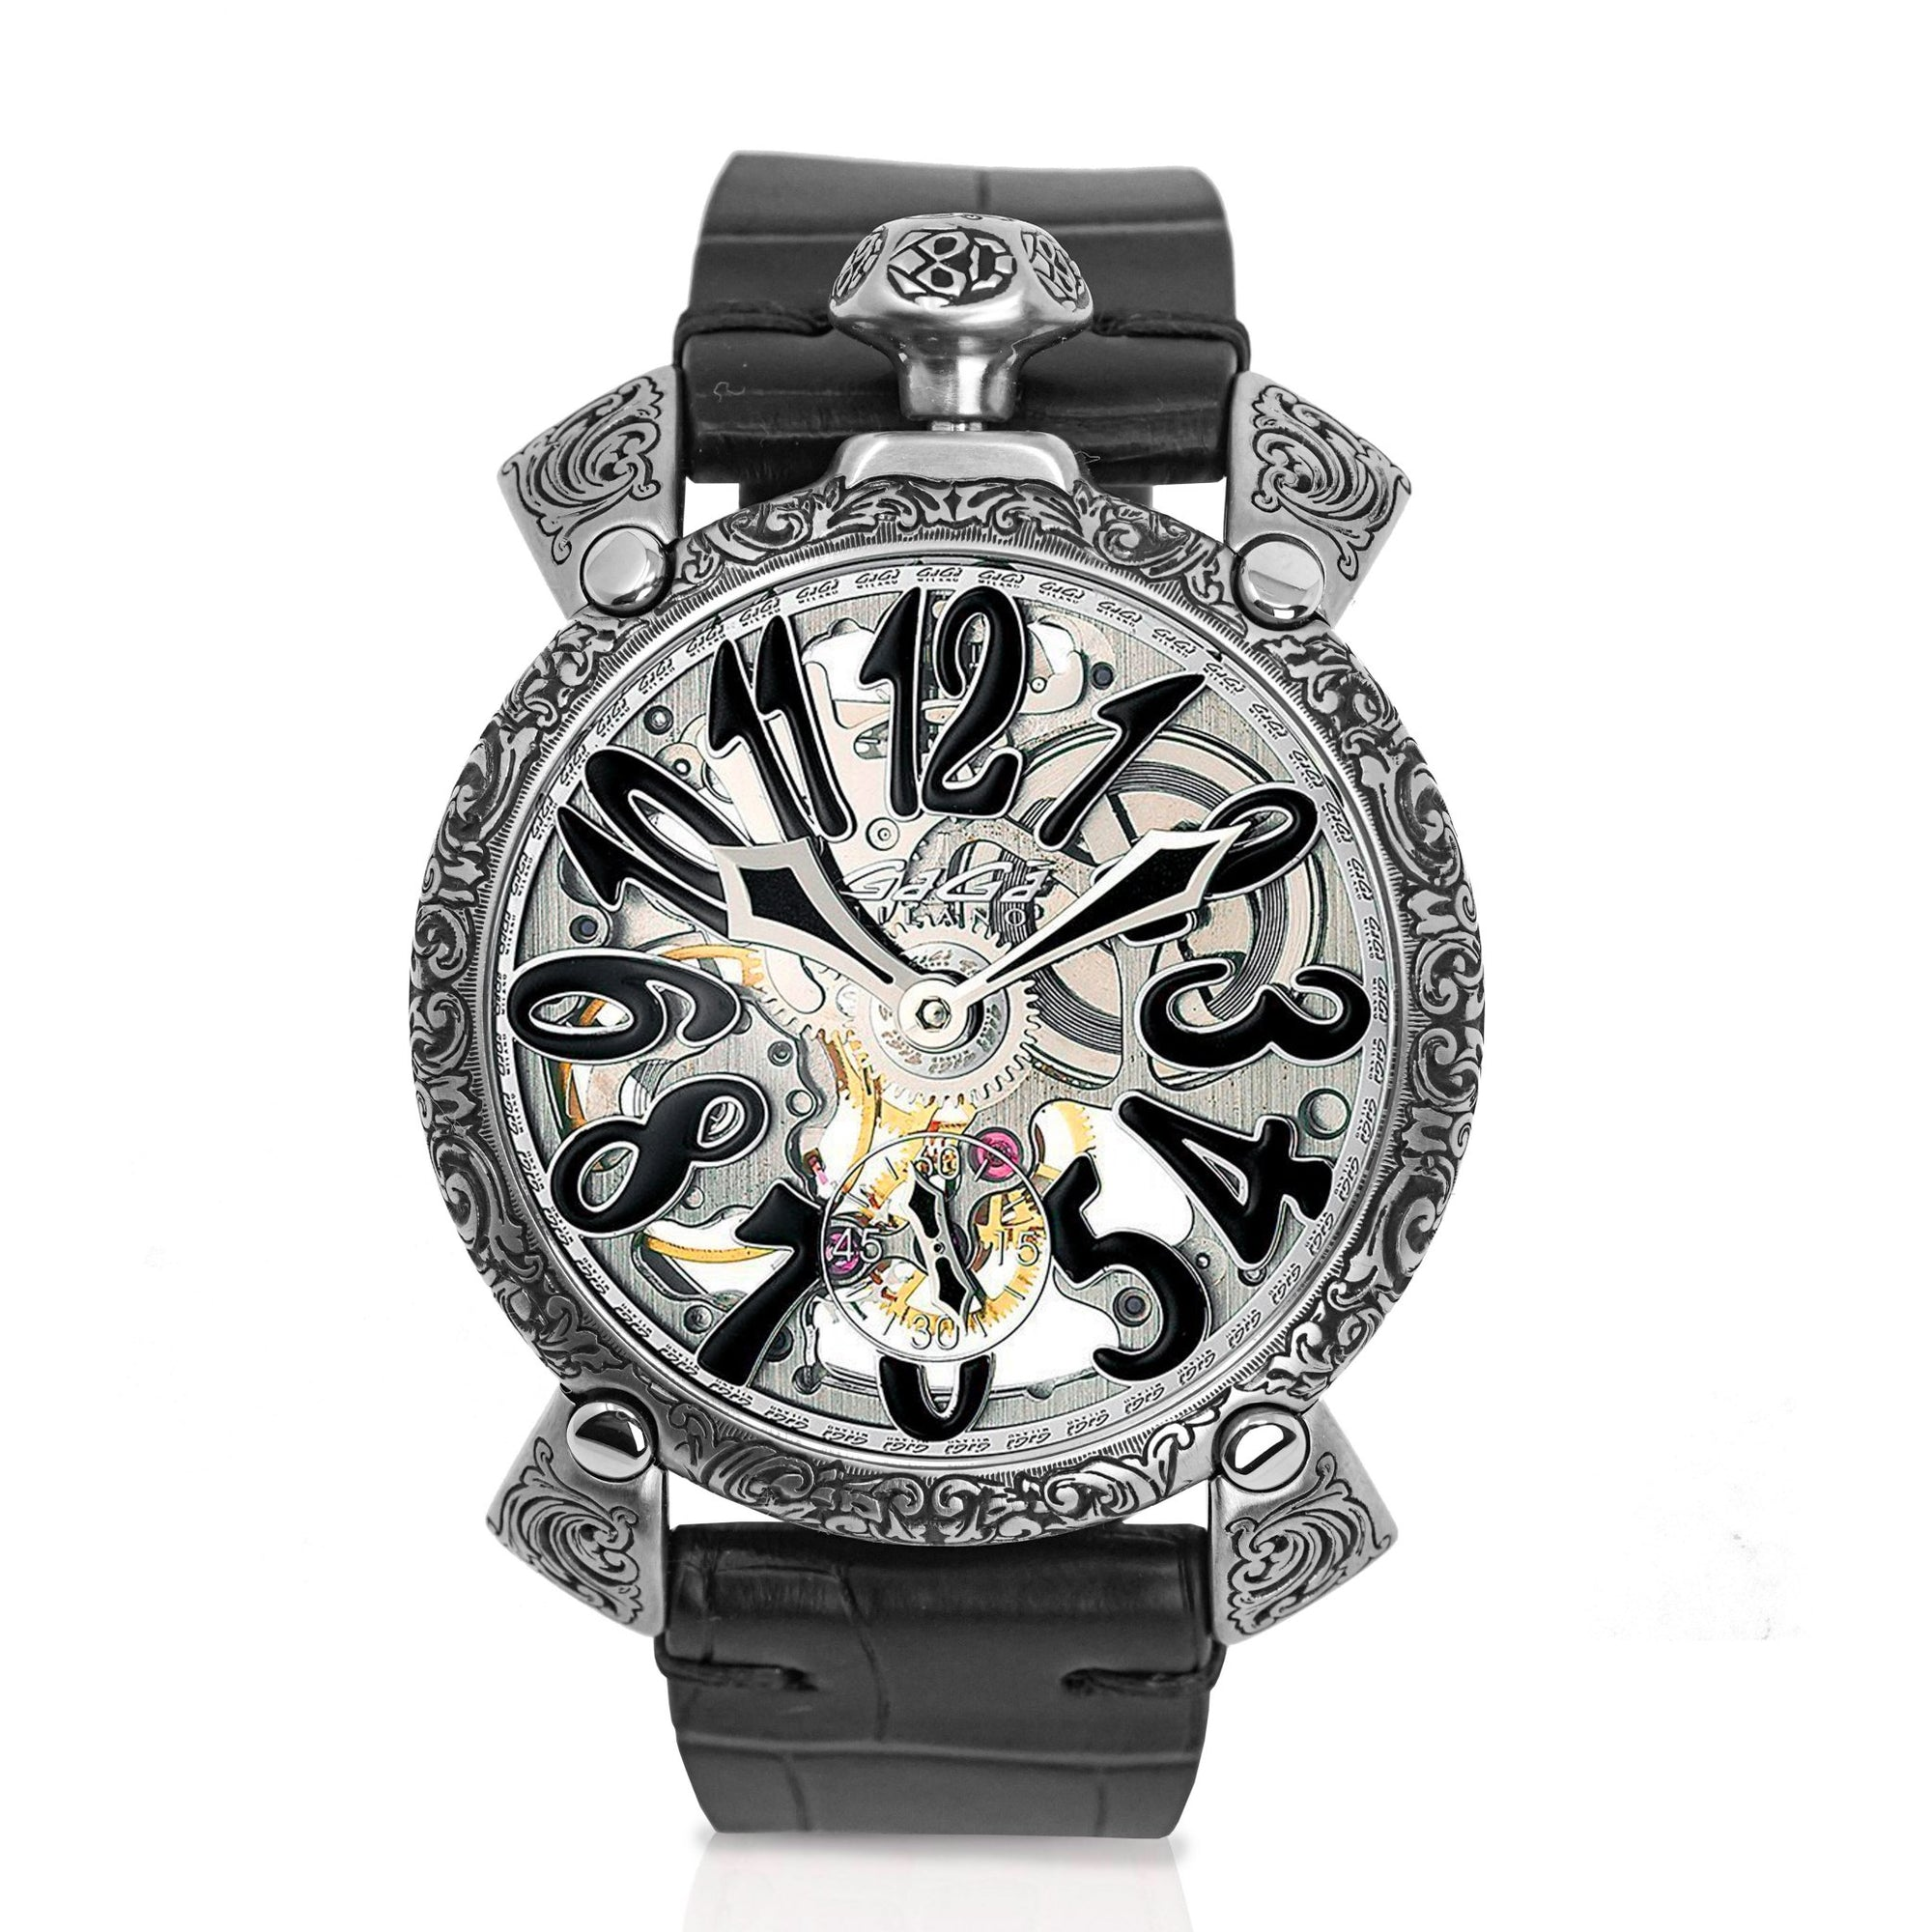 GaGà Milano Skeleton 48MM Black - Watches & Crystals